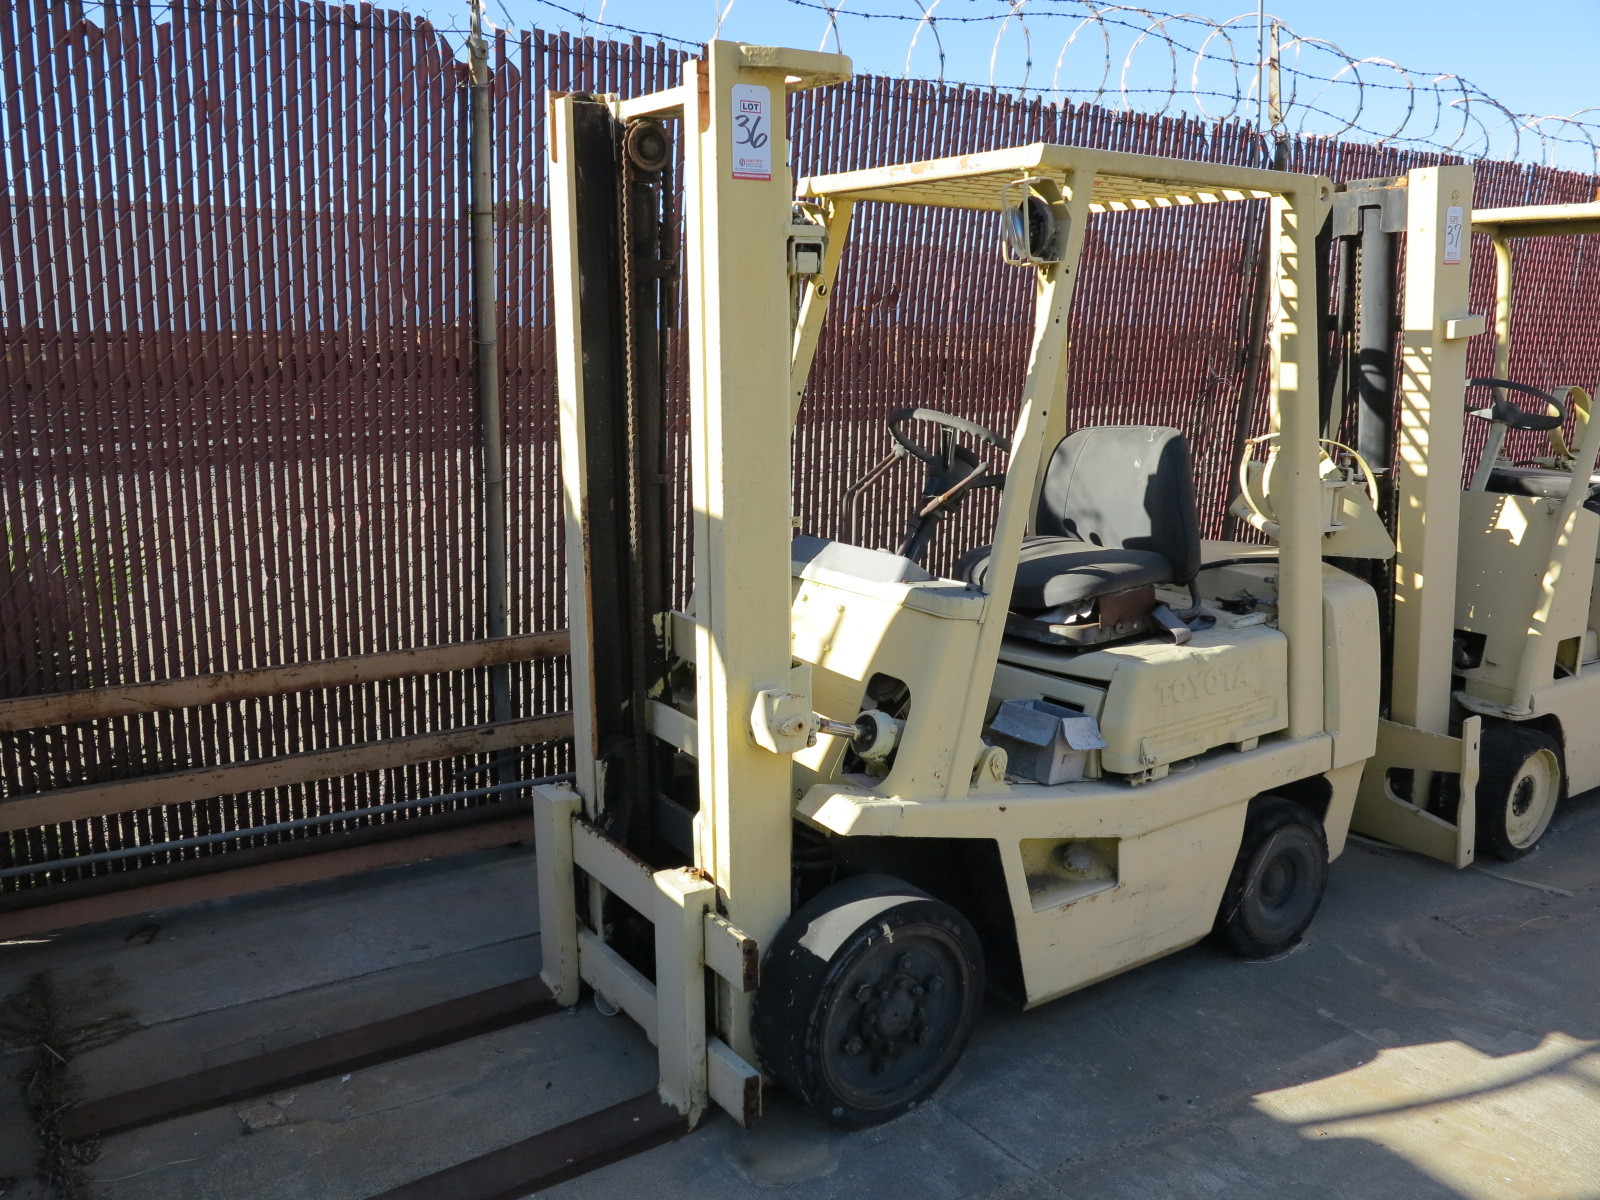 Lot 36 - TOYOTA LP FORKLIFT, OUT OF SERVICE